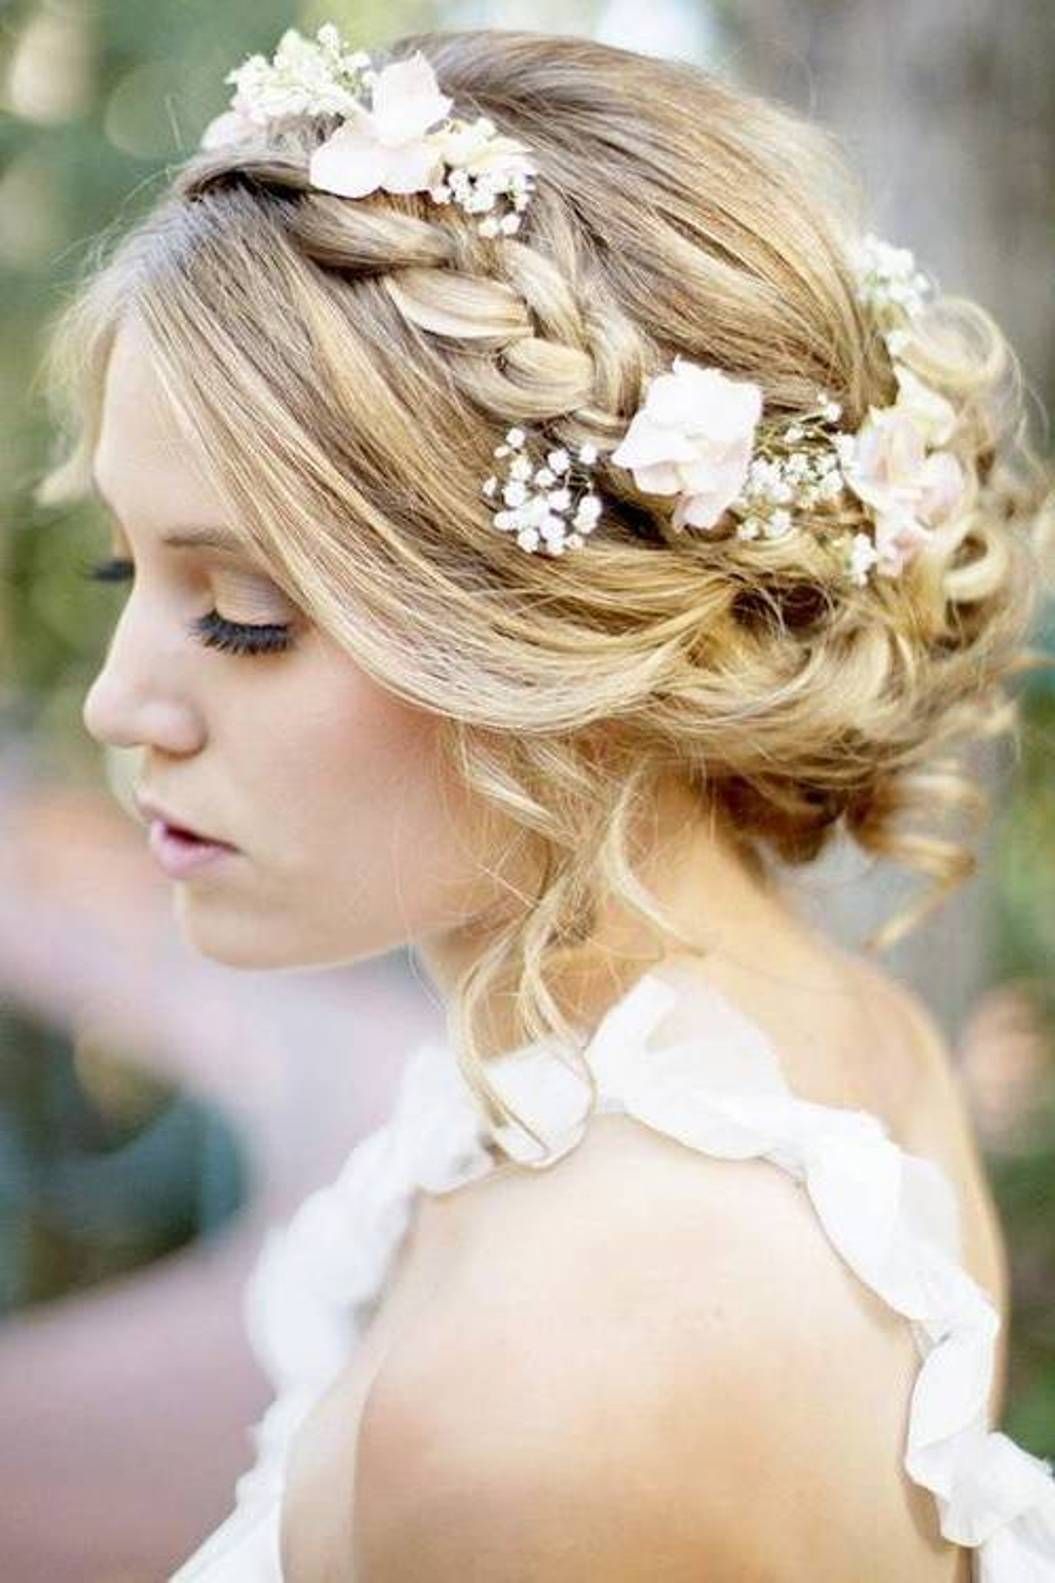 updo summer hair styles for wedding | beauty - hair styles